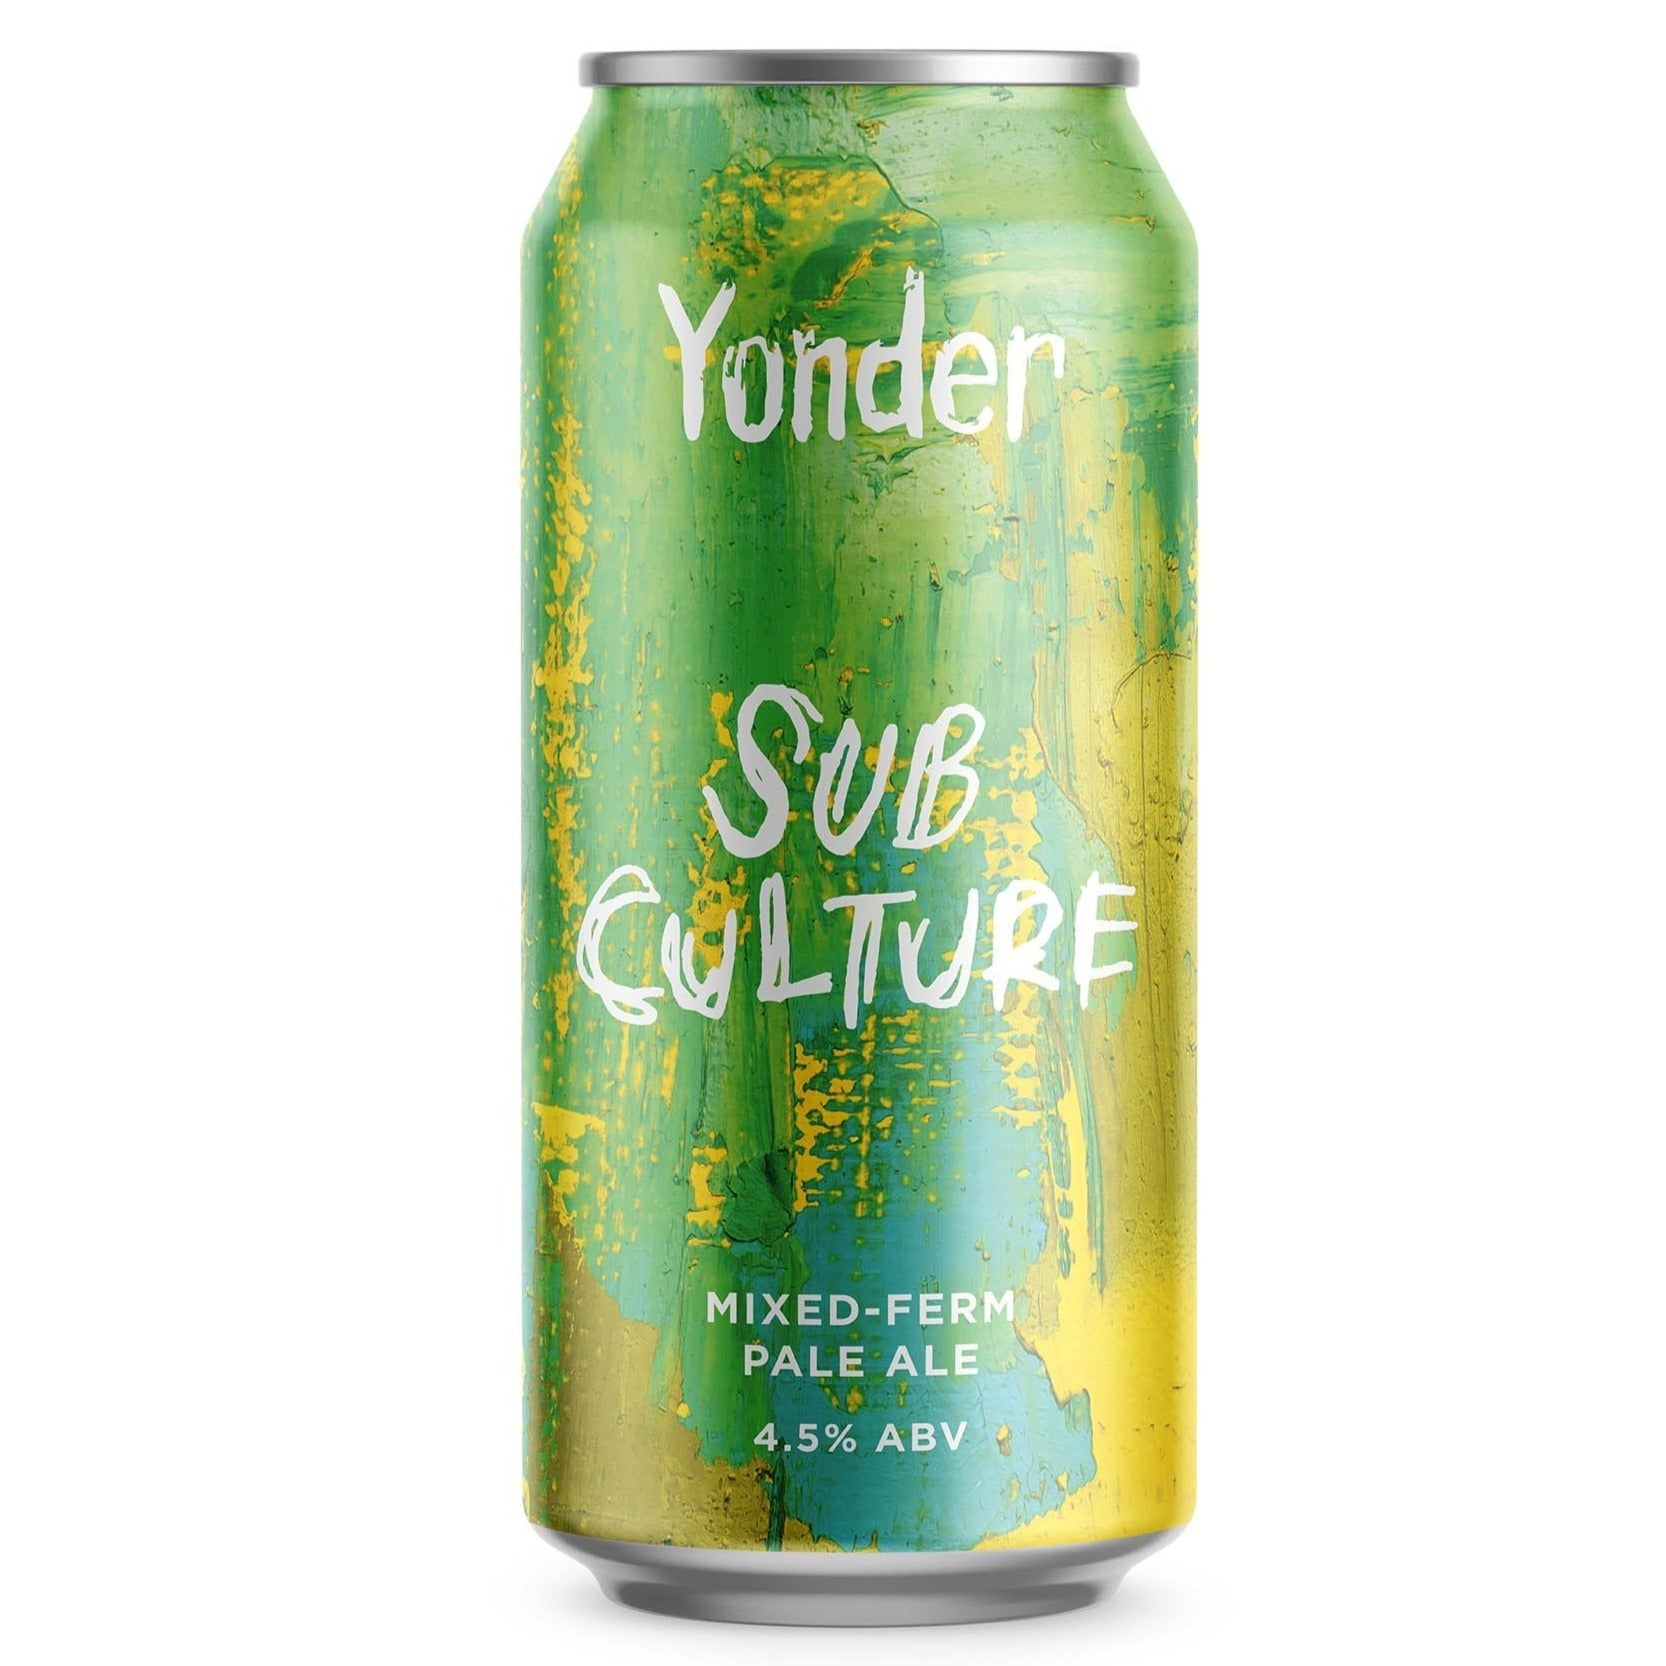 Yonder Brewing - Sub Culture - Mixed-Ferm Pale Ale - 440ml Can